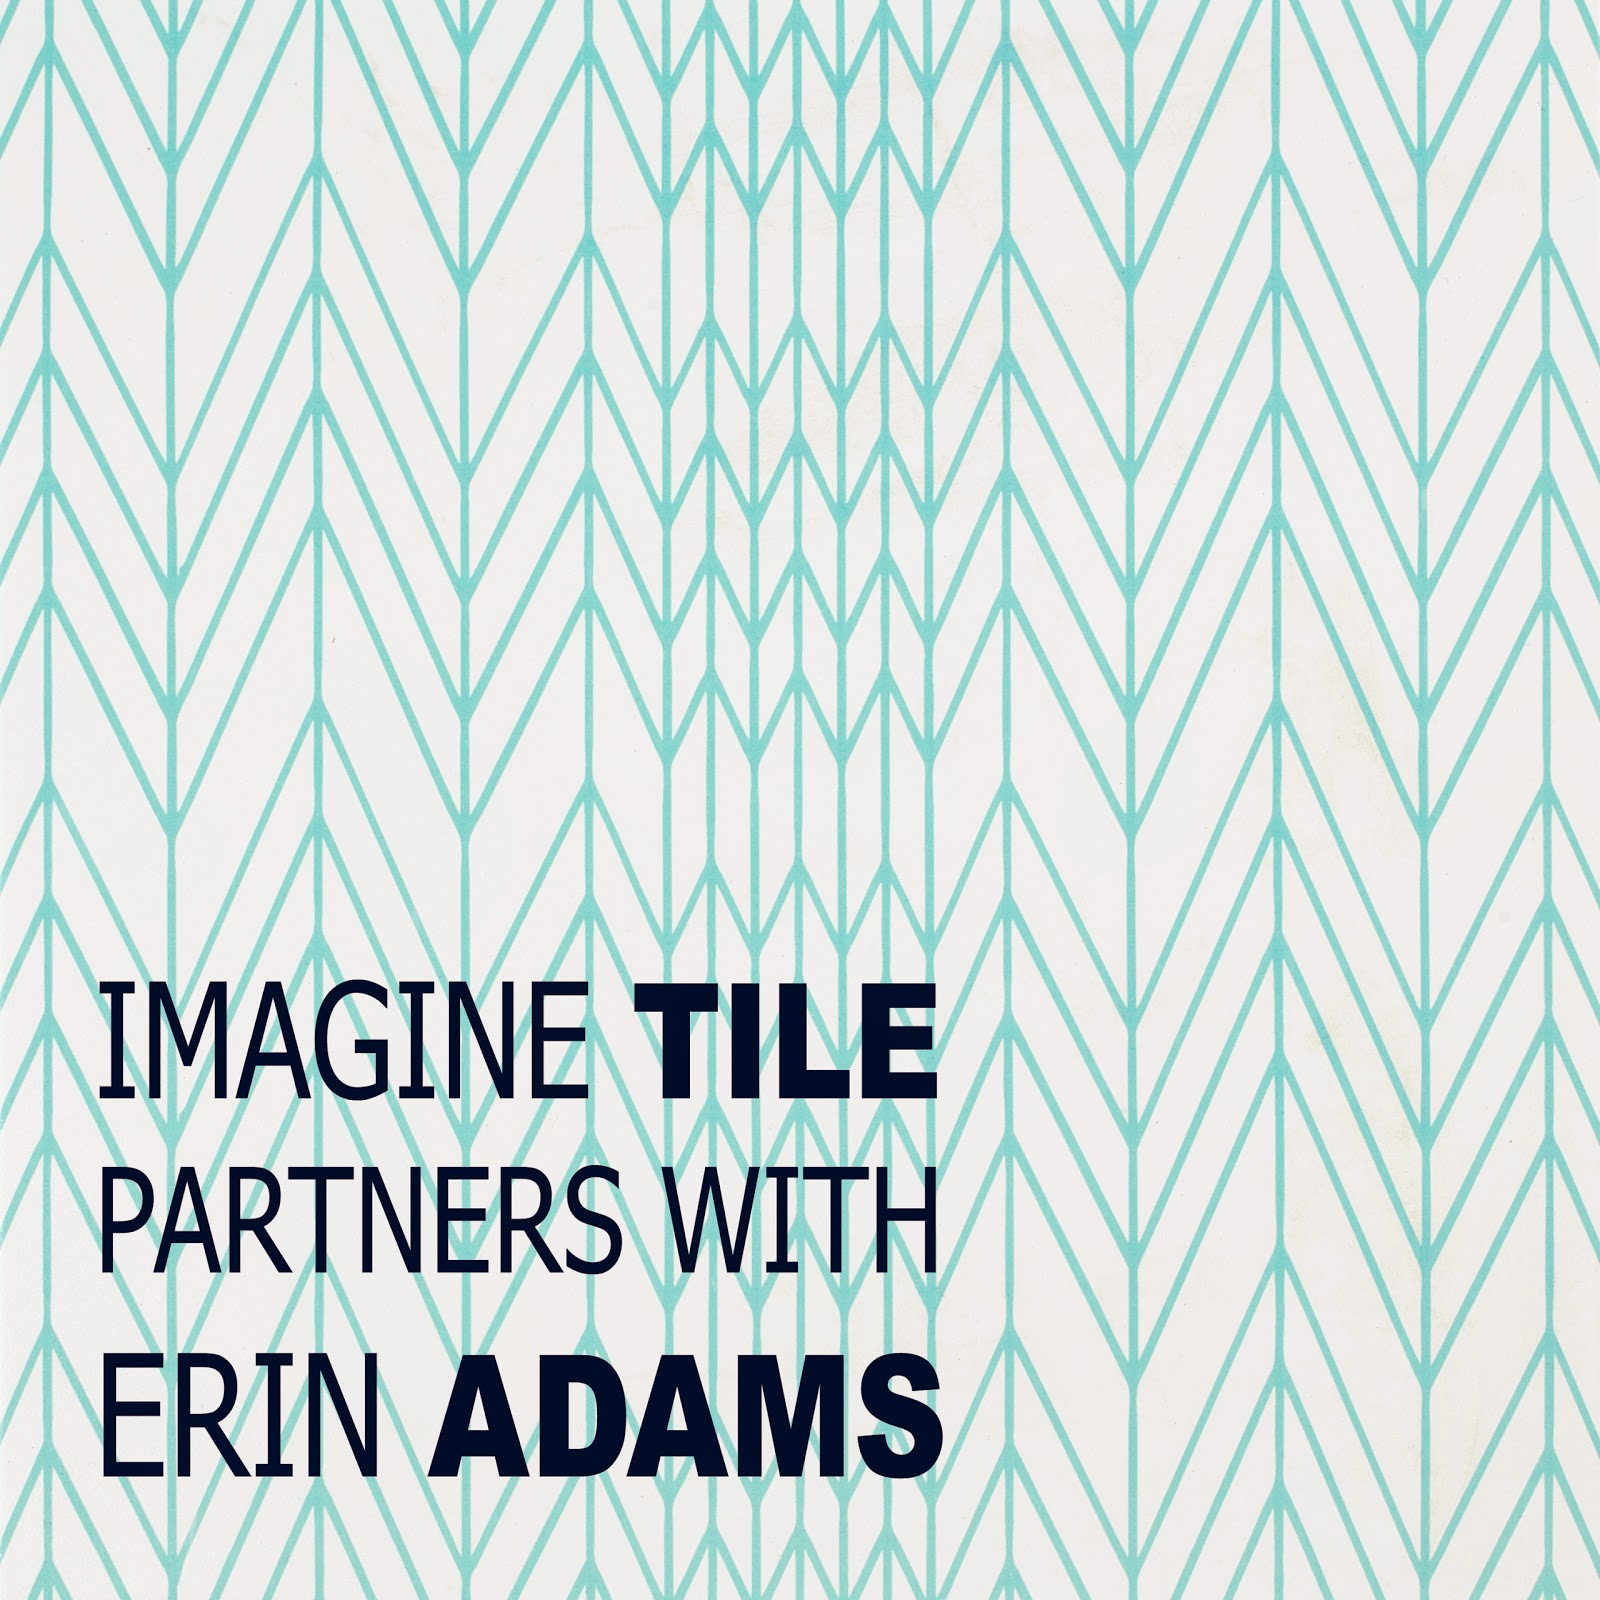 MoD Design Guru - Thinking-Outside-the-Box Design: DESIGNER SPOTLIGHT: ERIN ADAMS partners with IMAGINE TILE - Slant Stitch